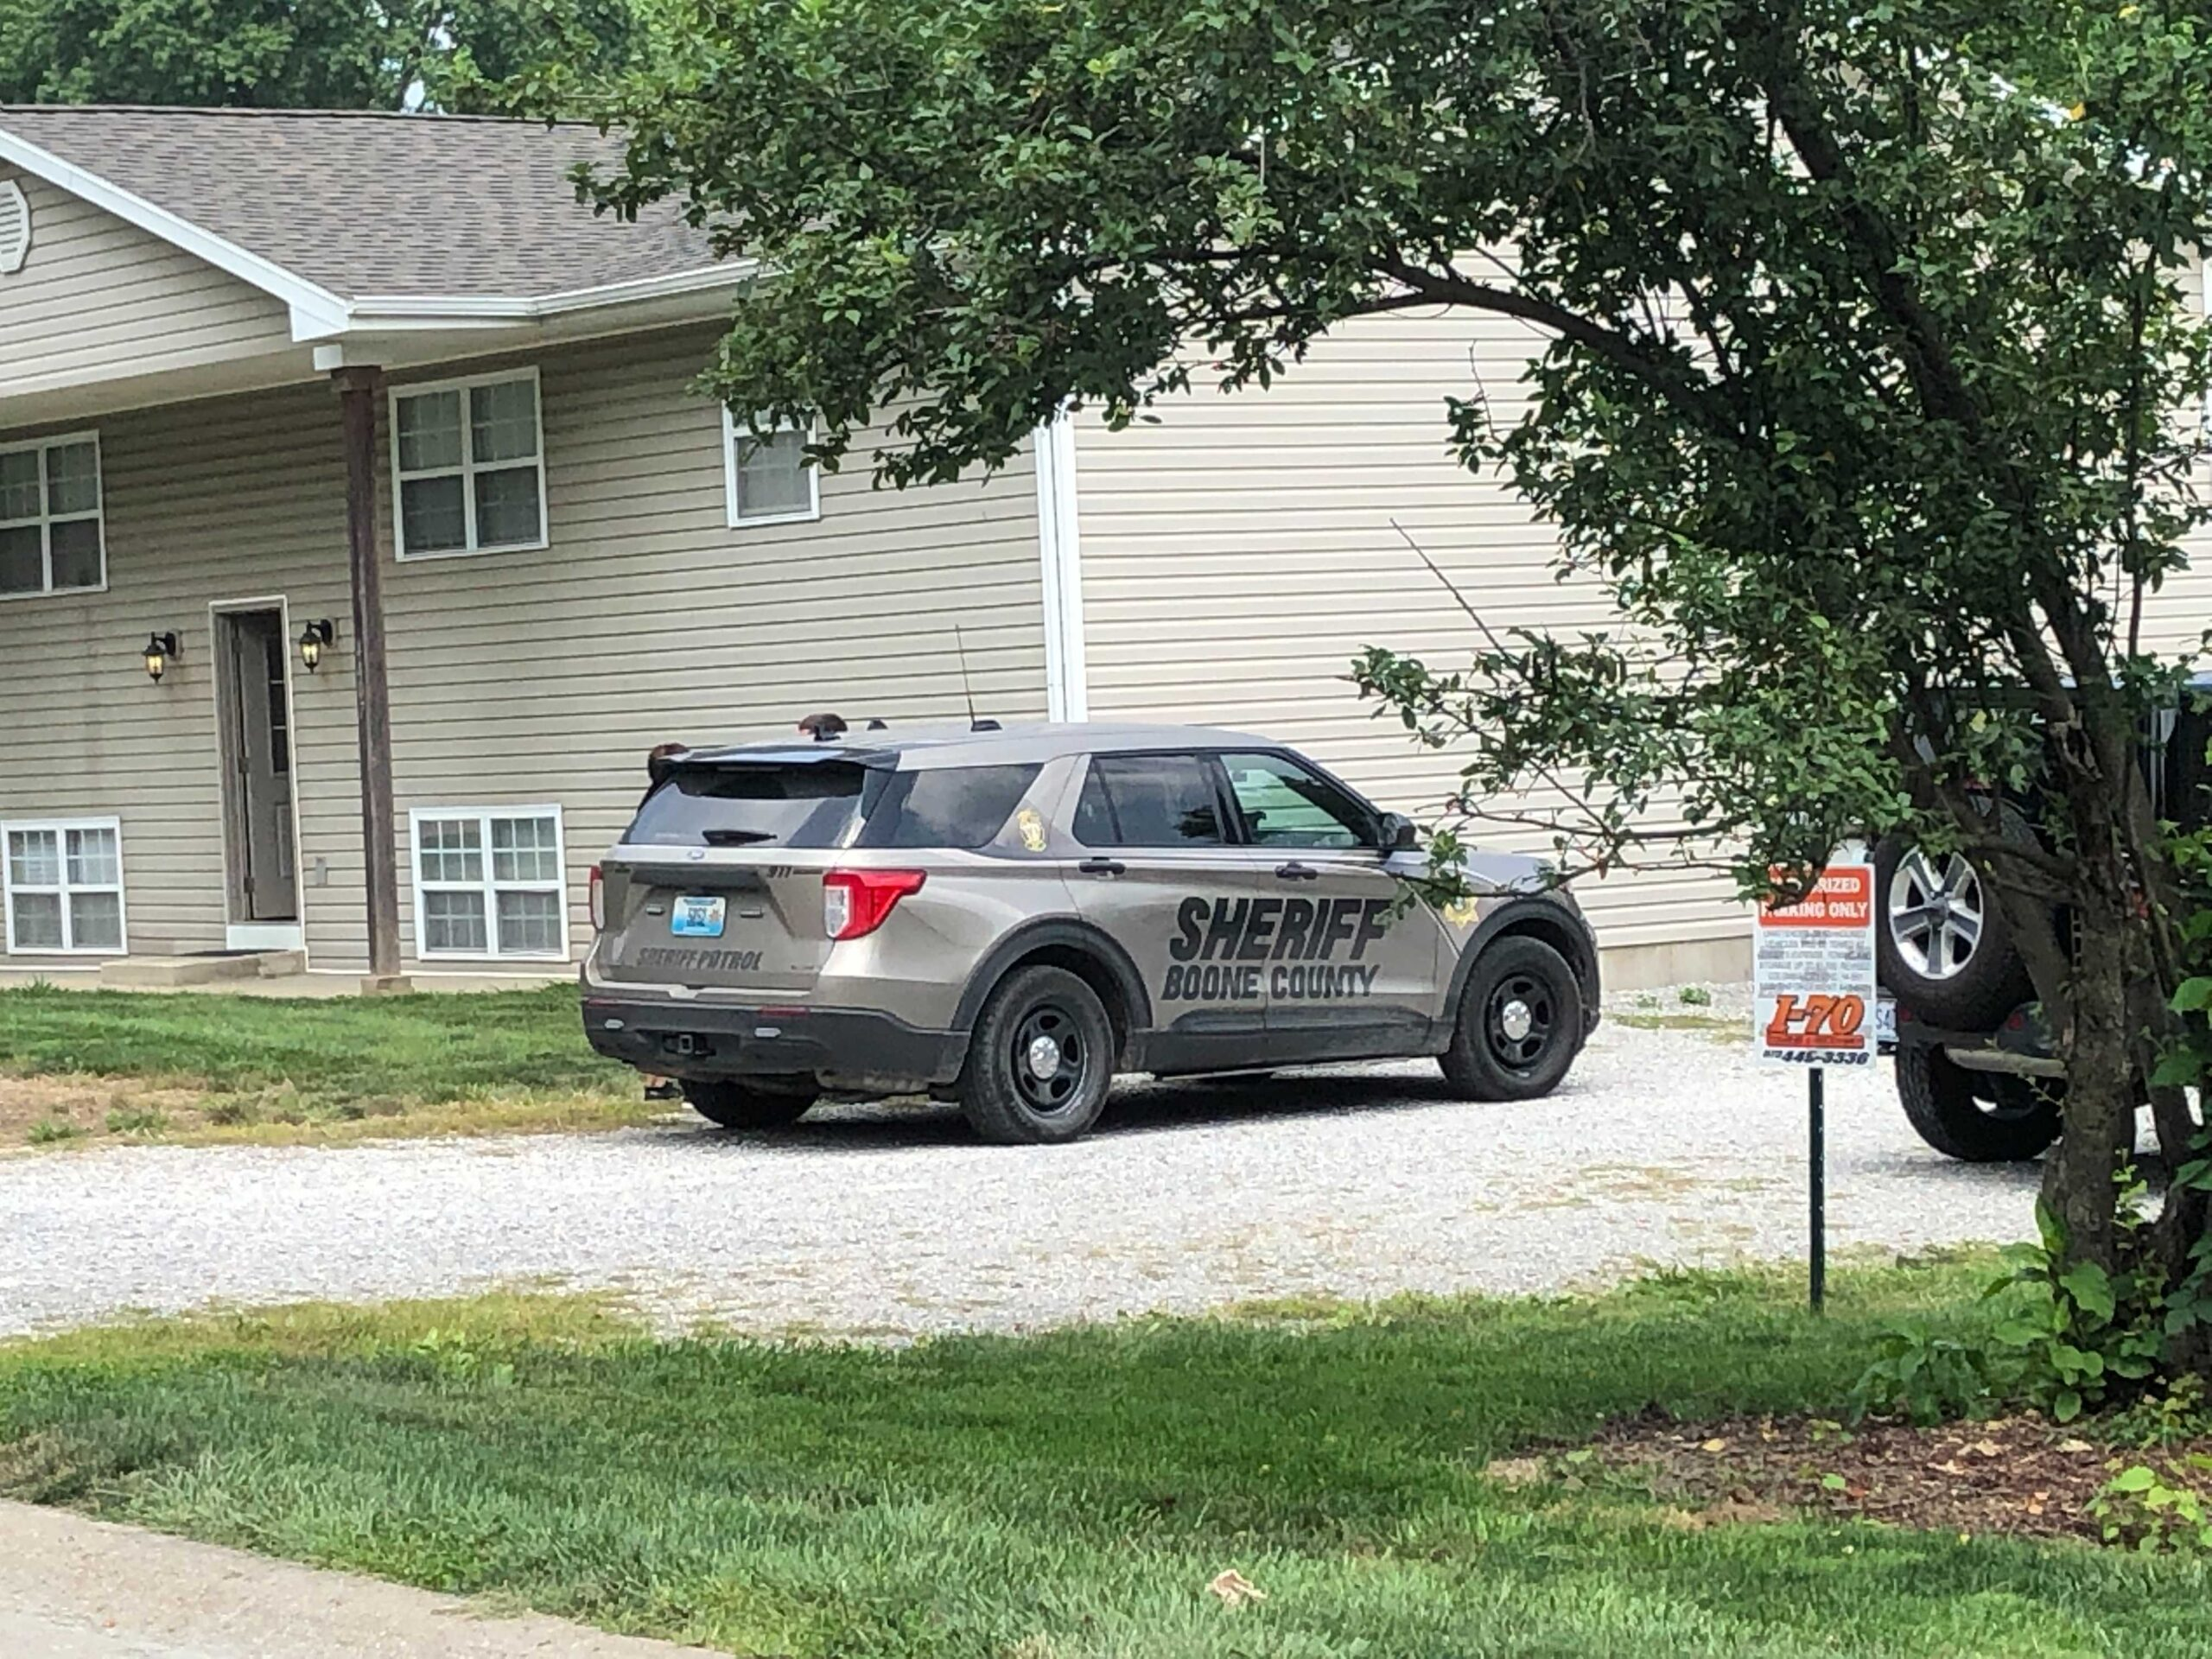 A Boone County Sheriff's Office cruiser is parked off West Bellview Drive outside Columbia during a shots-fired investigation on Friday, July 23, 2021.